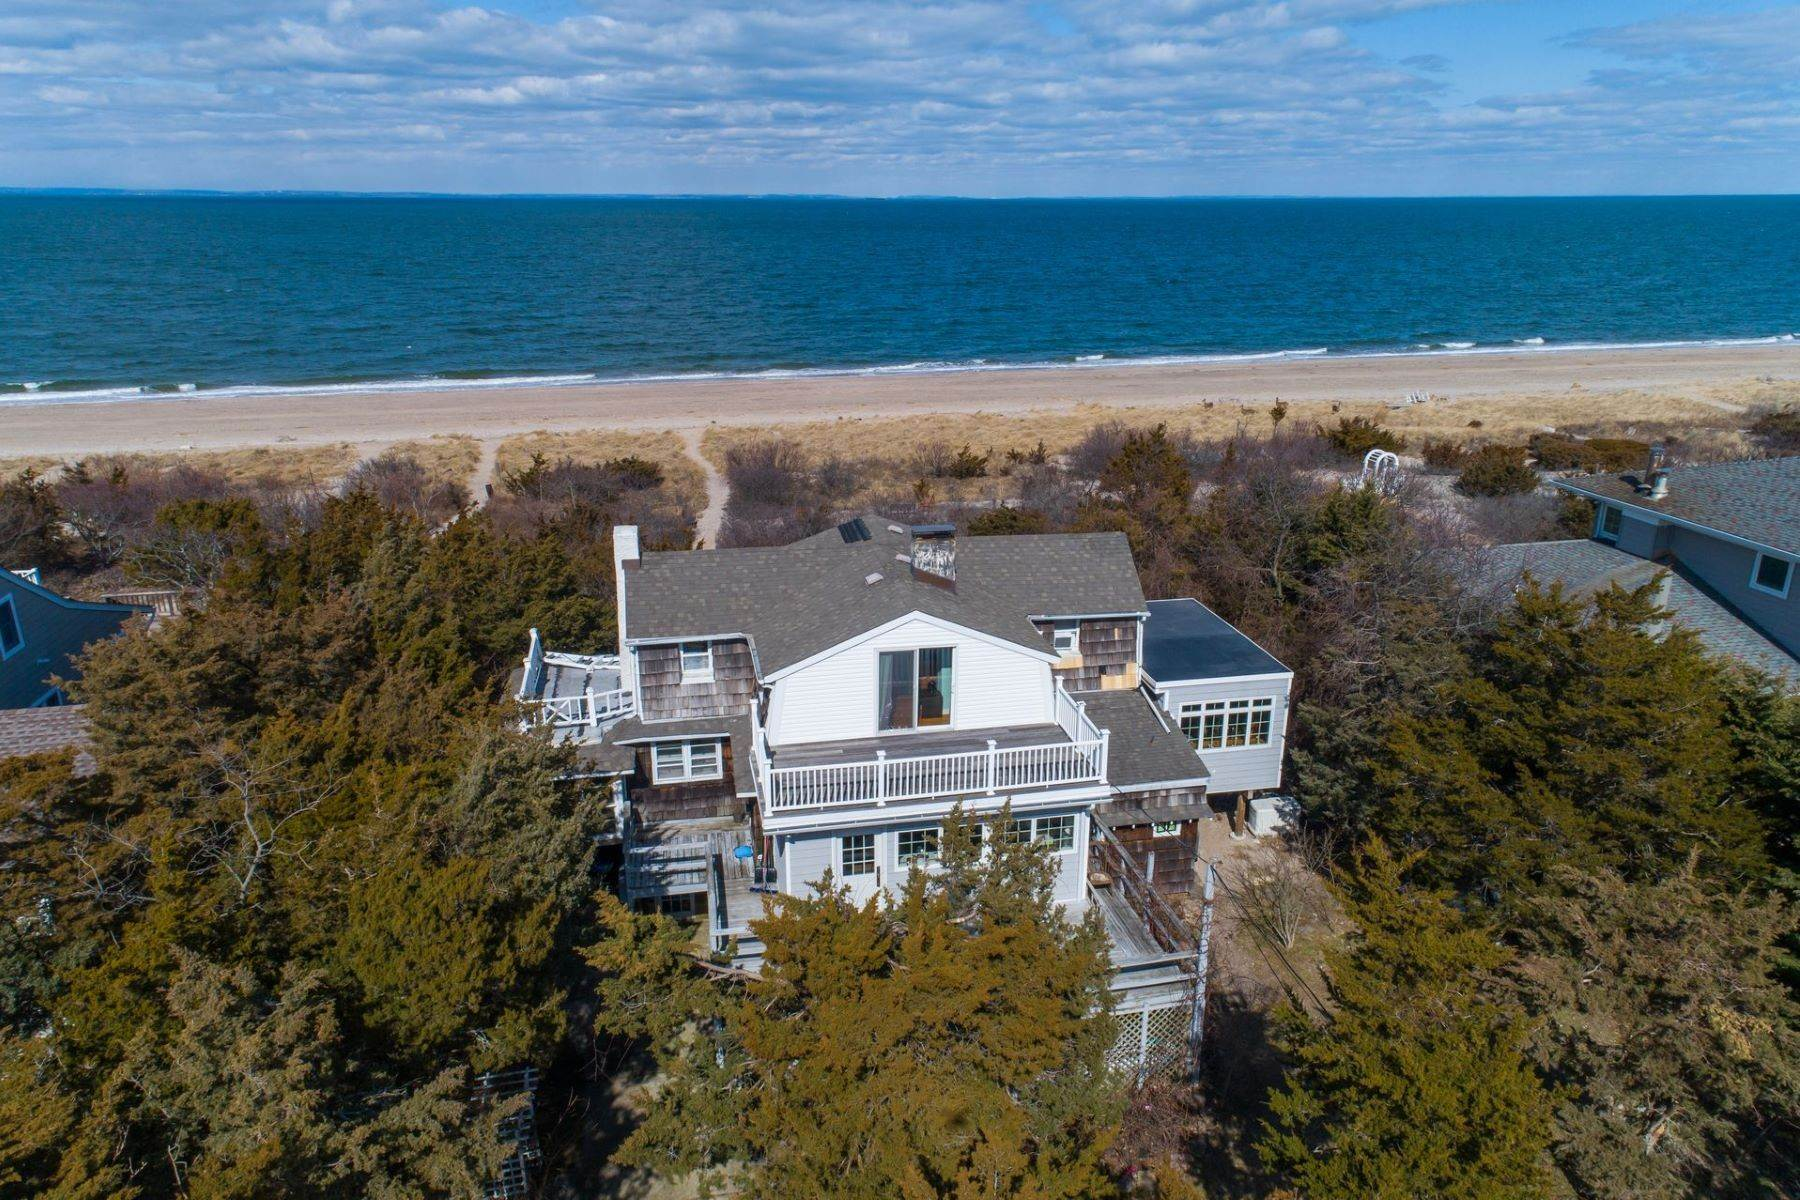 Single Family Homes for Sale at 129 Harbor Beach Road, Mt. Sinai, Ny, 11766 129 Harbor Beach Road Mount Sinai, New York 11766 United States